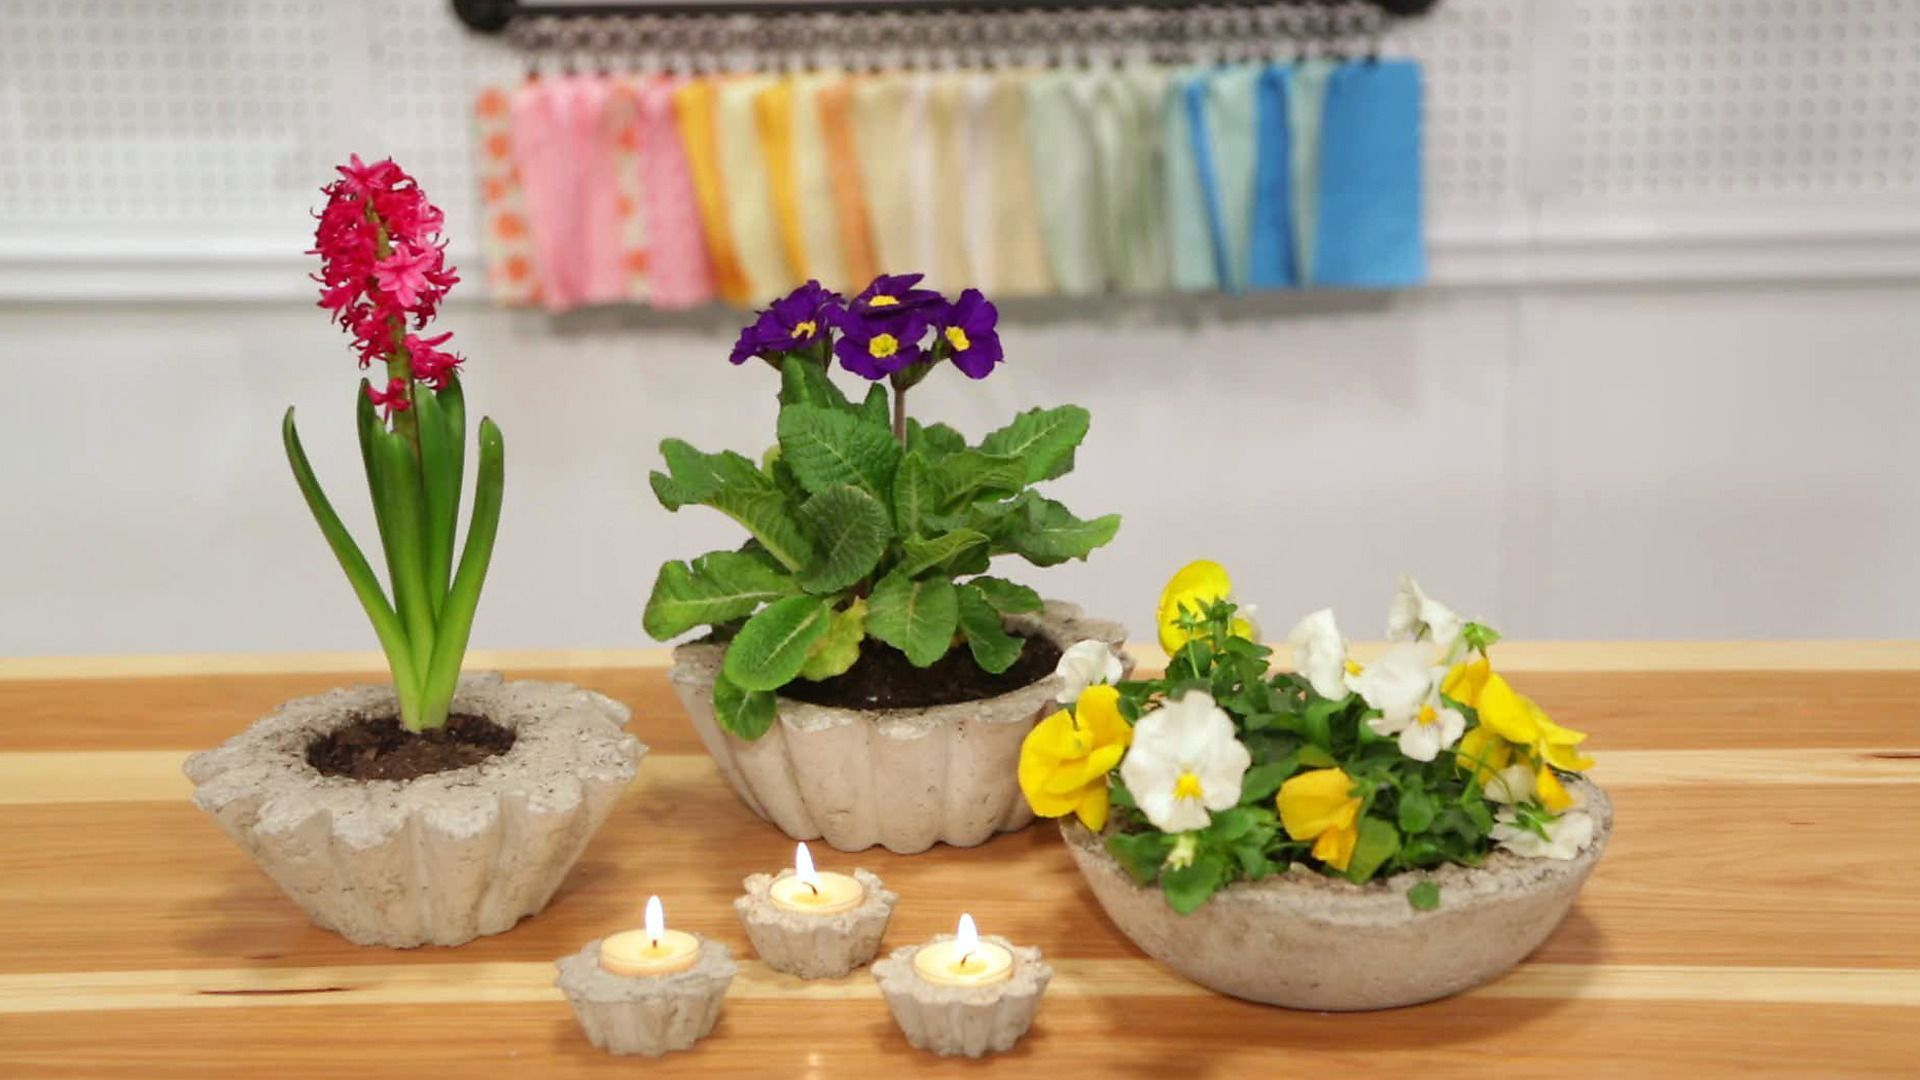 Marianne Canada uses an old bowl to make a decorative concrete planter. Get everything you need to make thiscraft here